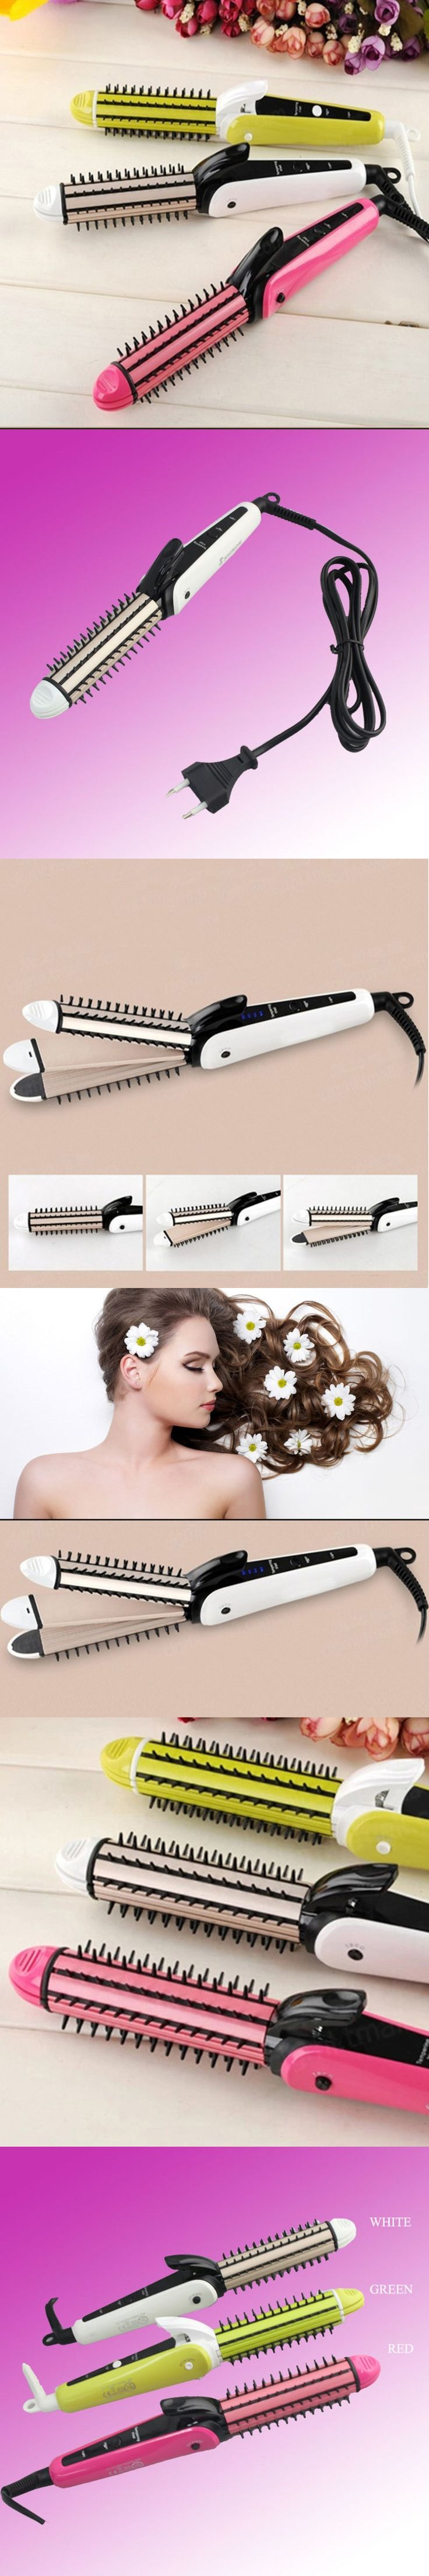 3in1 Curling Iron Automatic Hair Curler EU Plug Curling Iron Hair Perming Device Hair Straightener Wet And Dry Dual Use